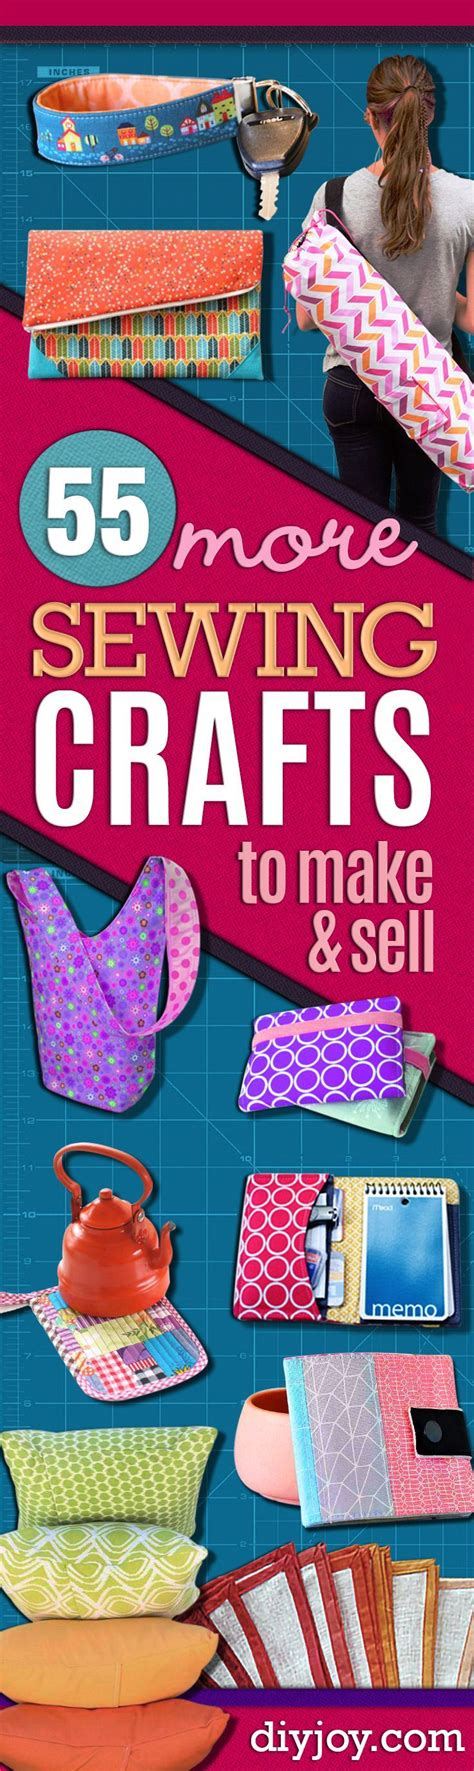 ideas to sell for sewing crafts to make and sell easy diy sewing ideas to